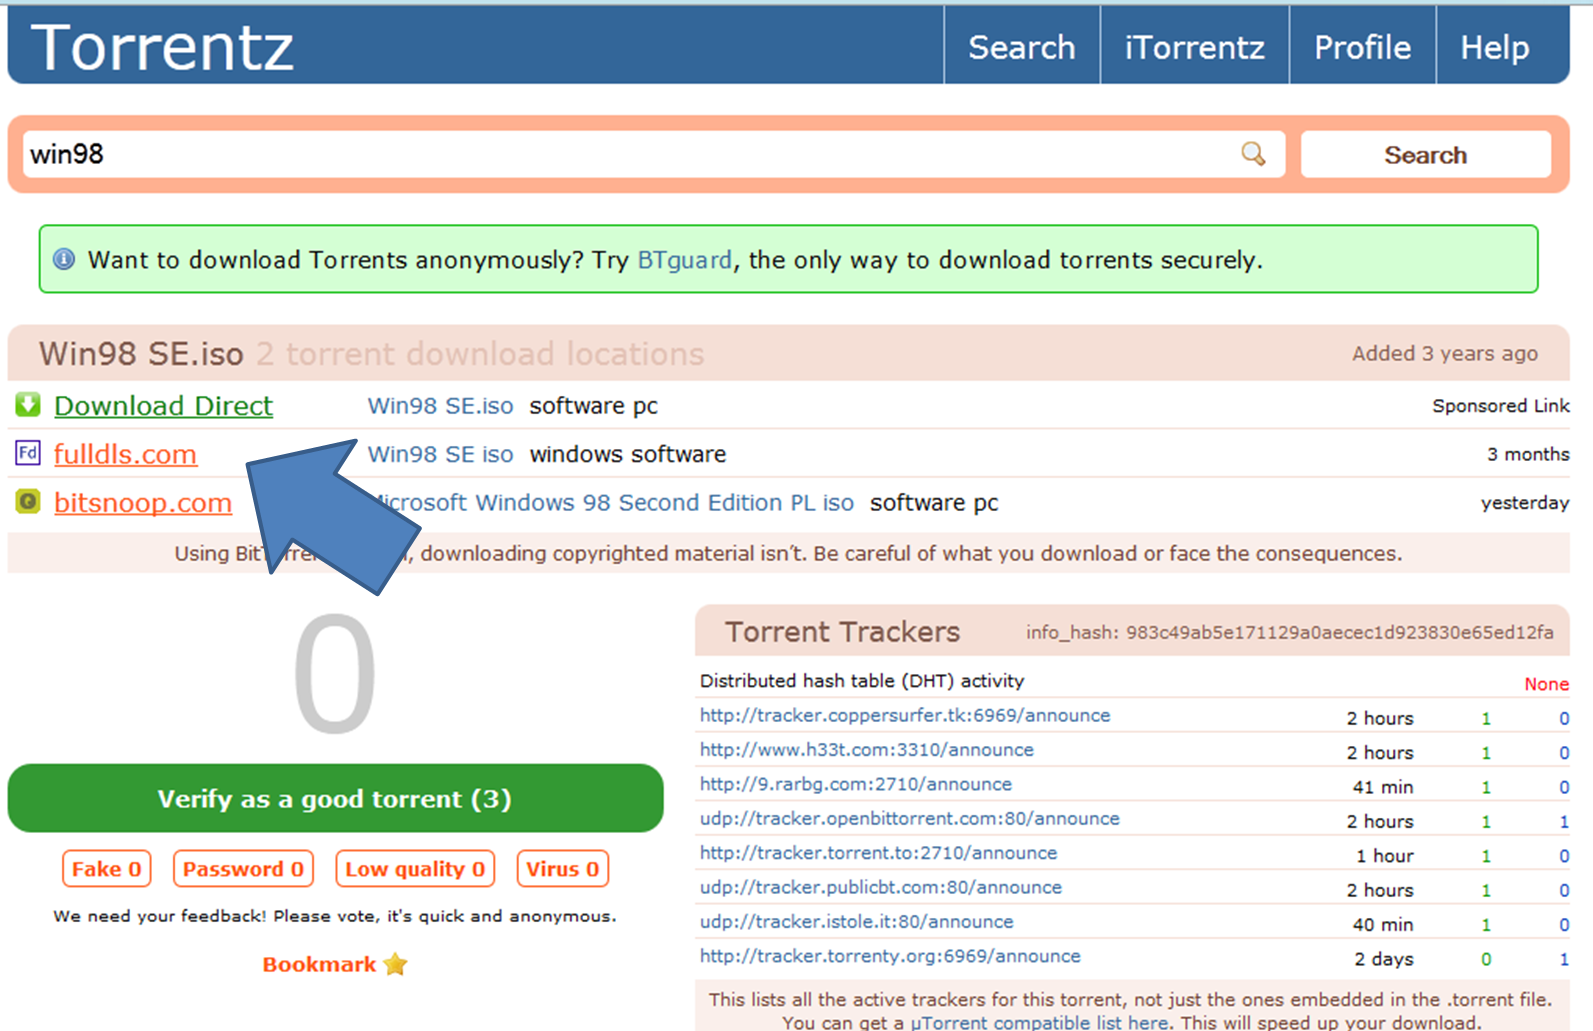 itorrentz driverlayer search engine